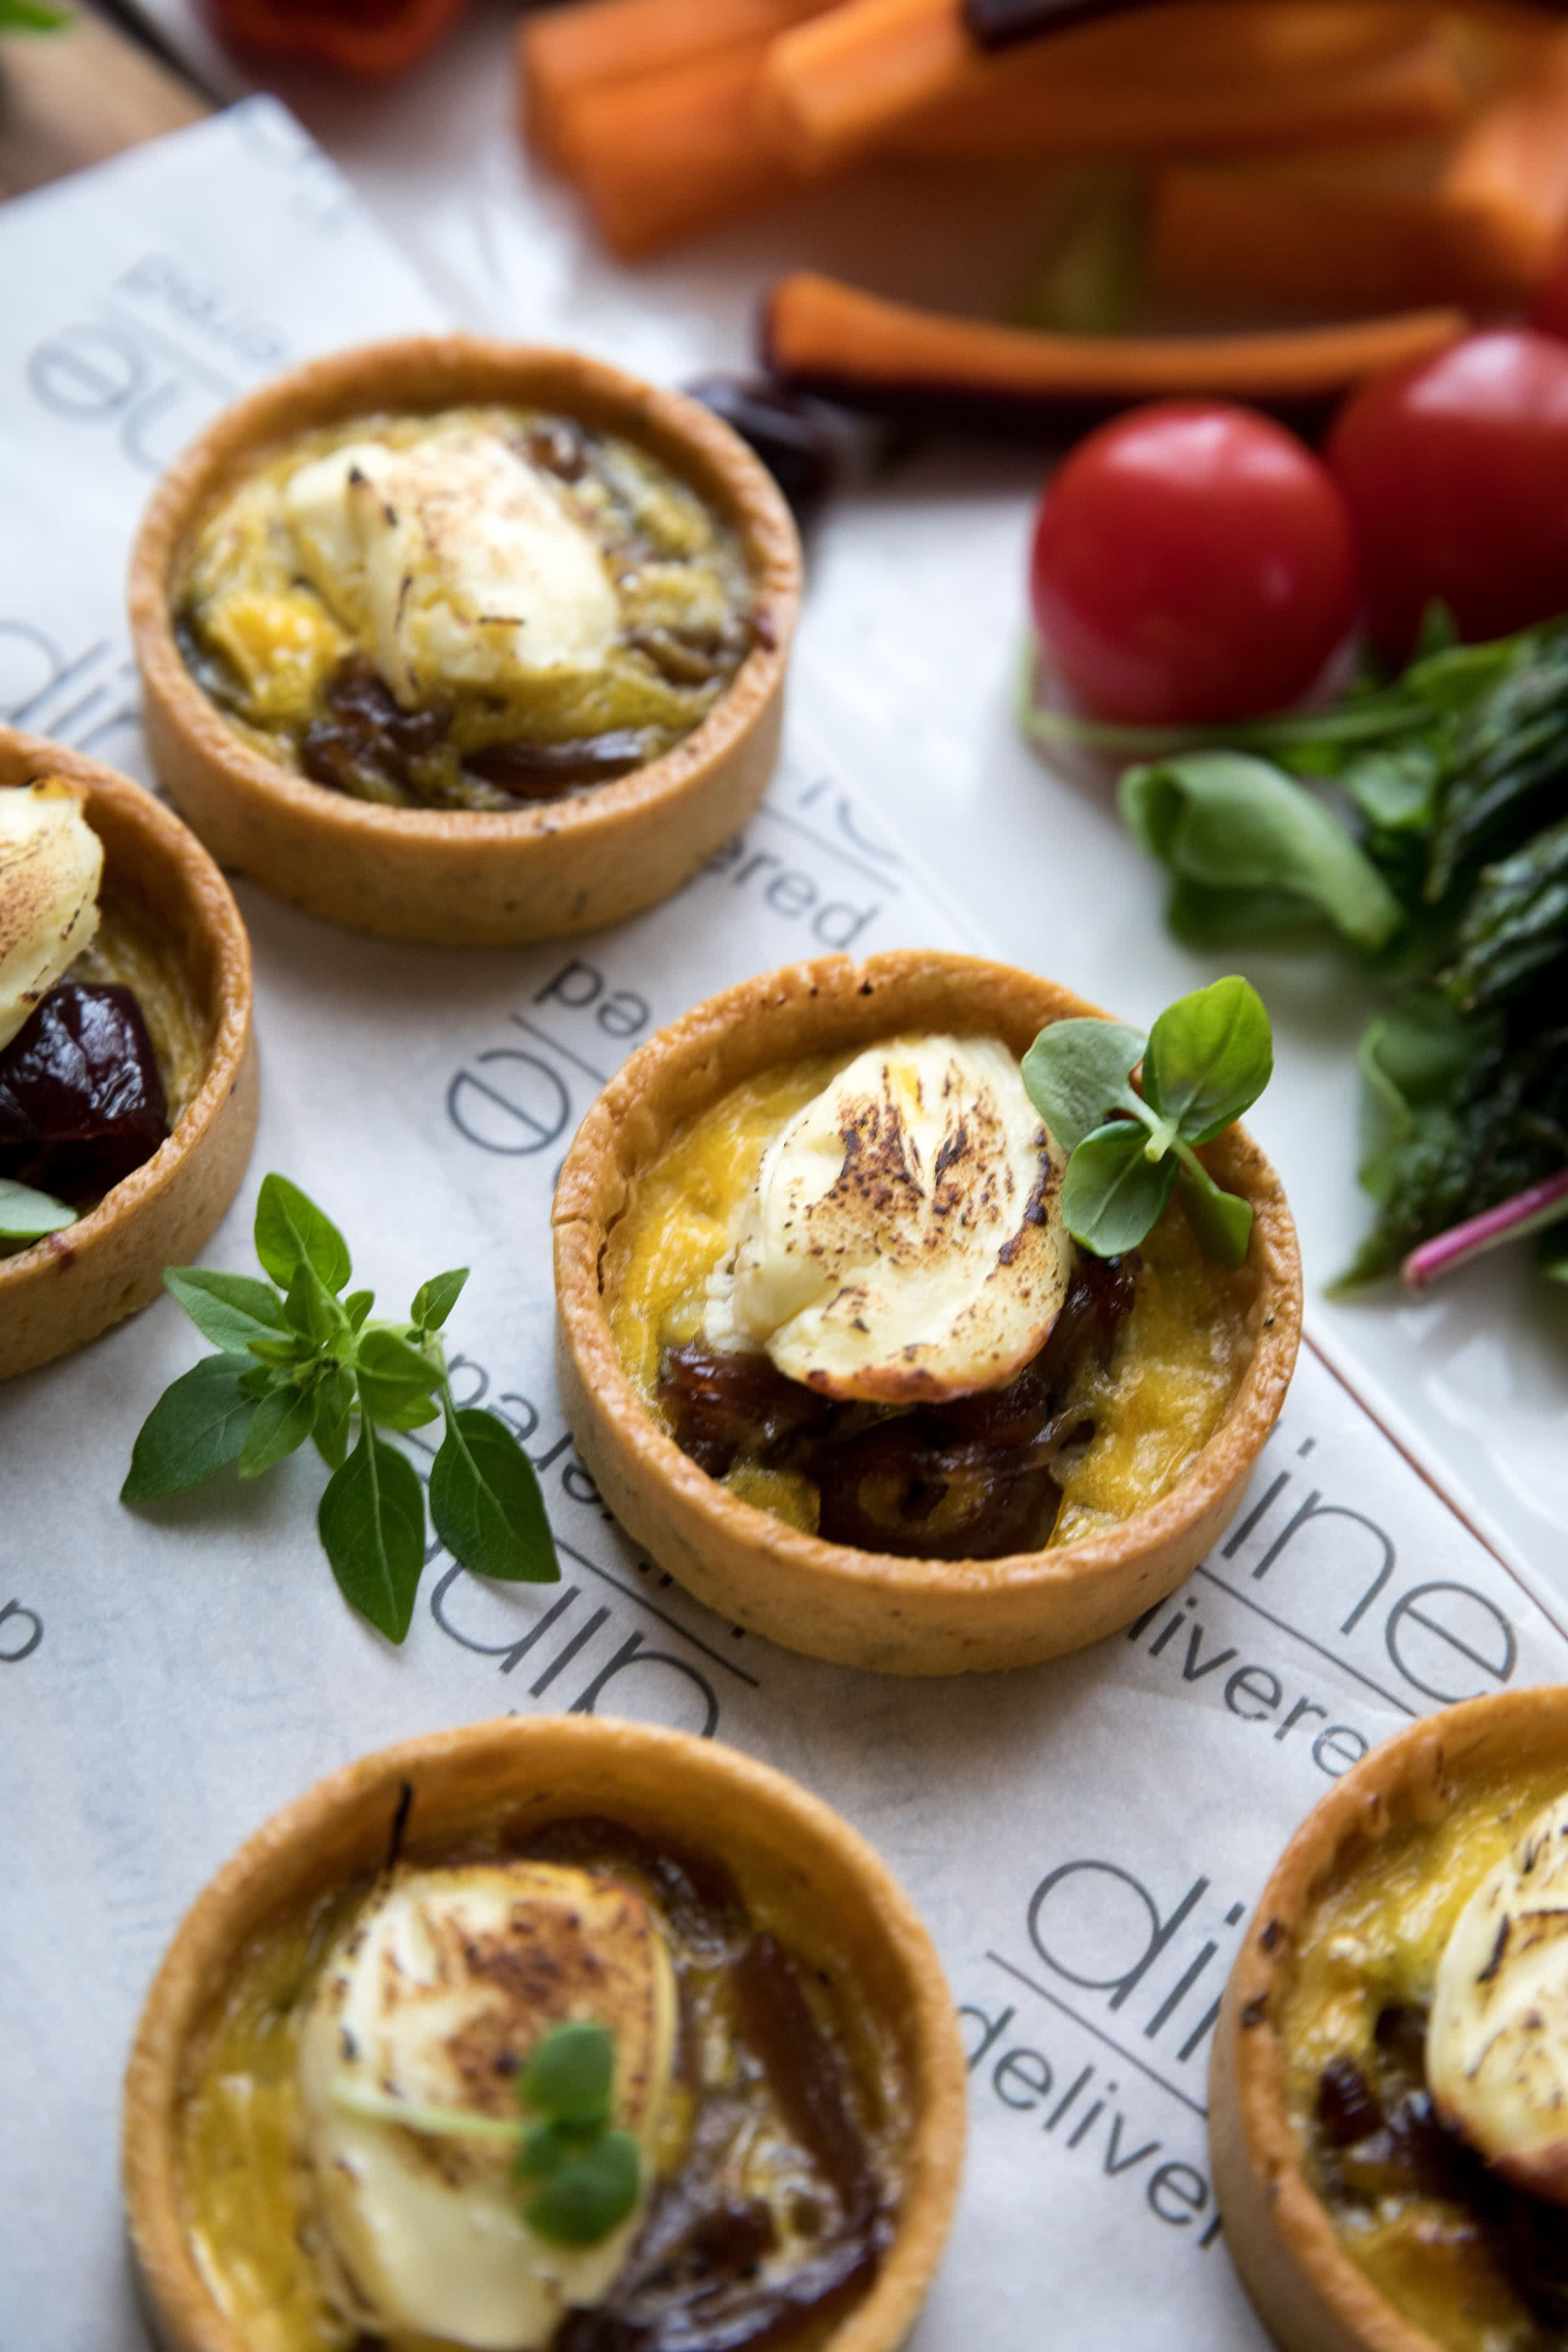 'Goats cheese & caramelised onion tarts were a winner' Amy, We are Vista